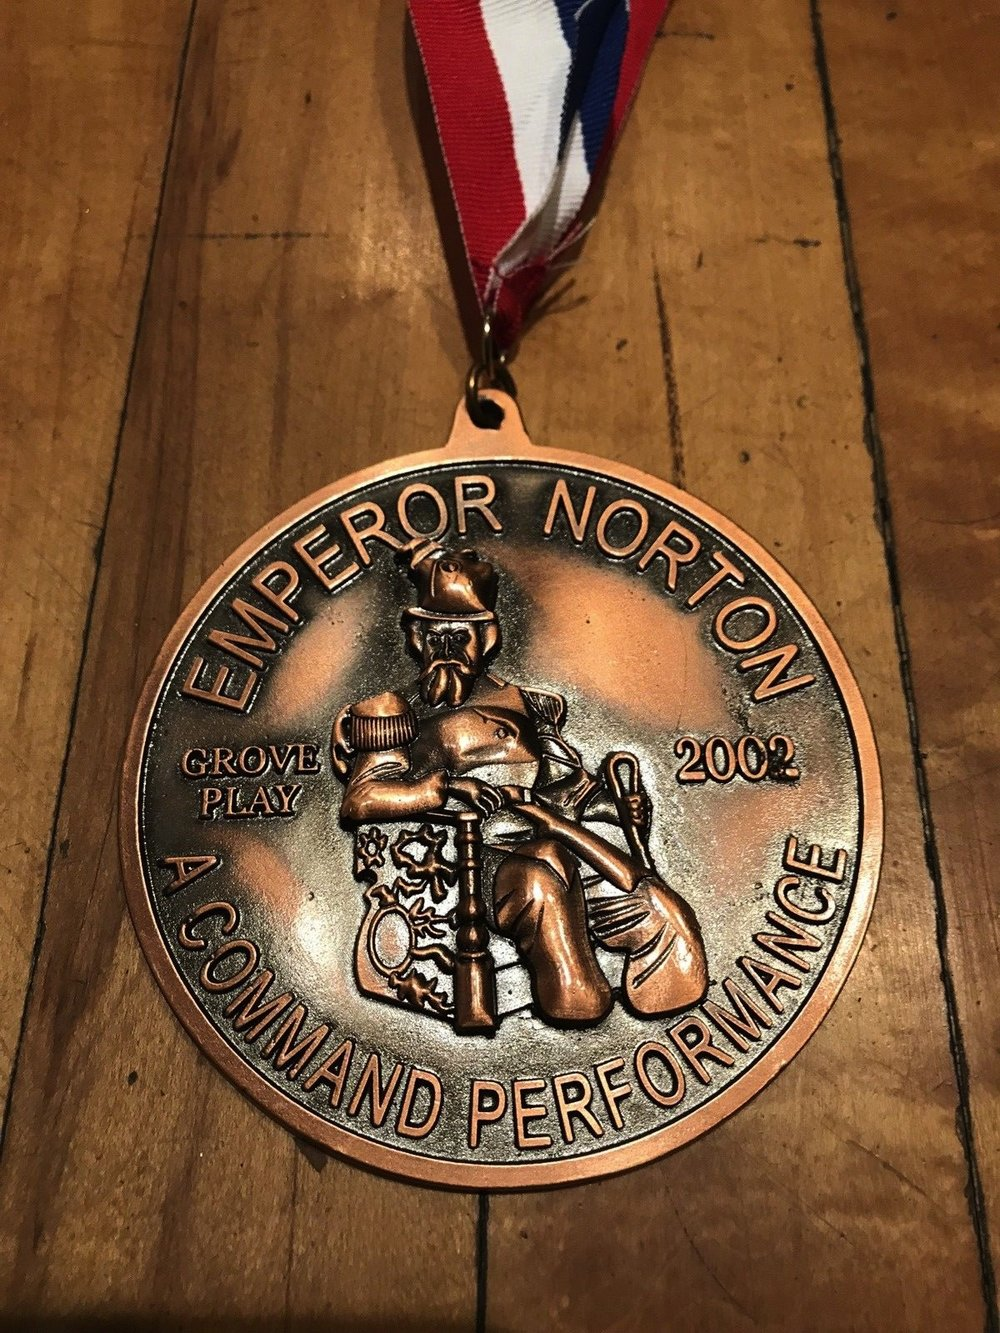 Medal, Bohemian Club, 2002.  The Bohemian Club presented this medal, as a gift of thanks, to each member of the cast of  Emperor Norton: A Command Performance , the 2002 Grove Play, performed on 26 July 2002. An item mentioning the medal appeared in the August 2002 newsletter of the Redwood Empire Chinese Association,  here . Source:  eBay .